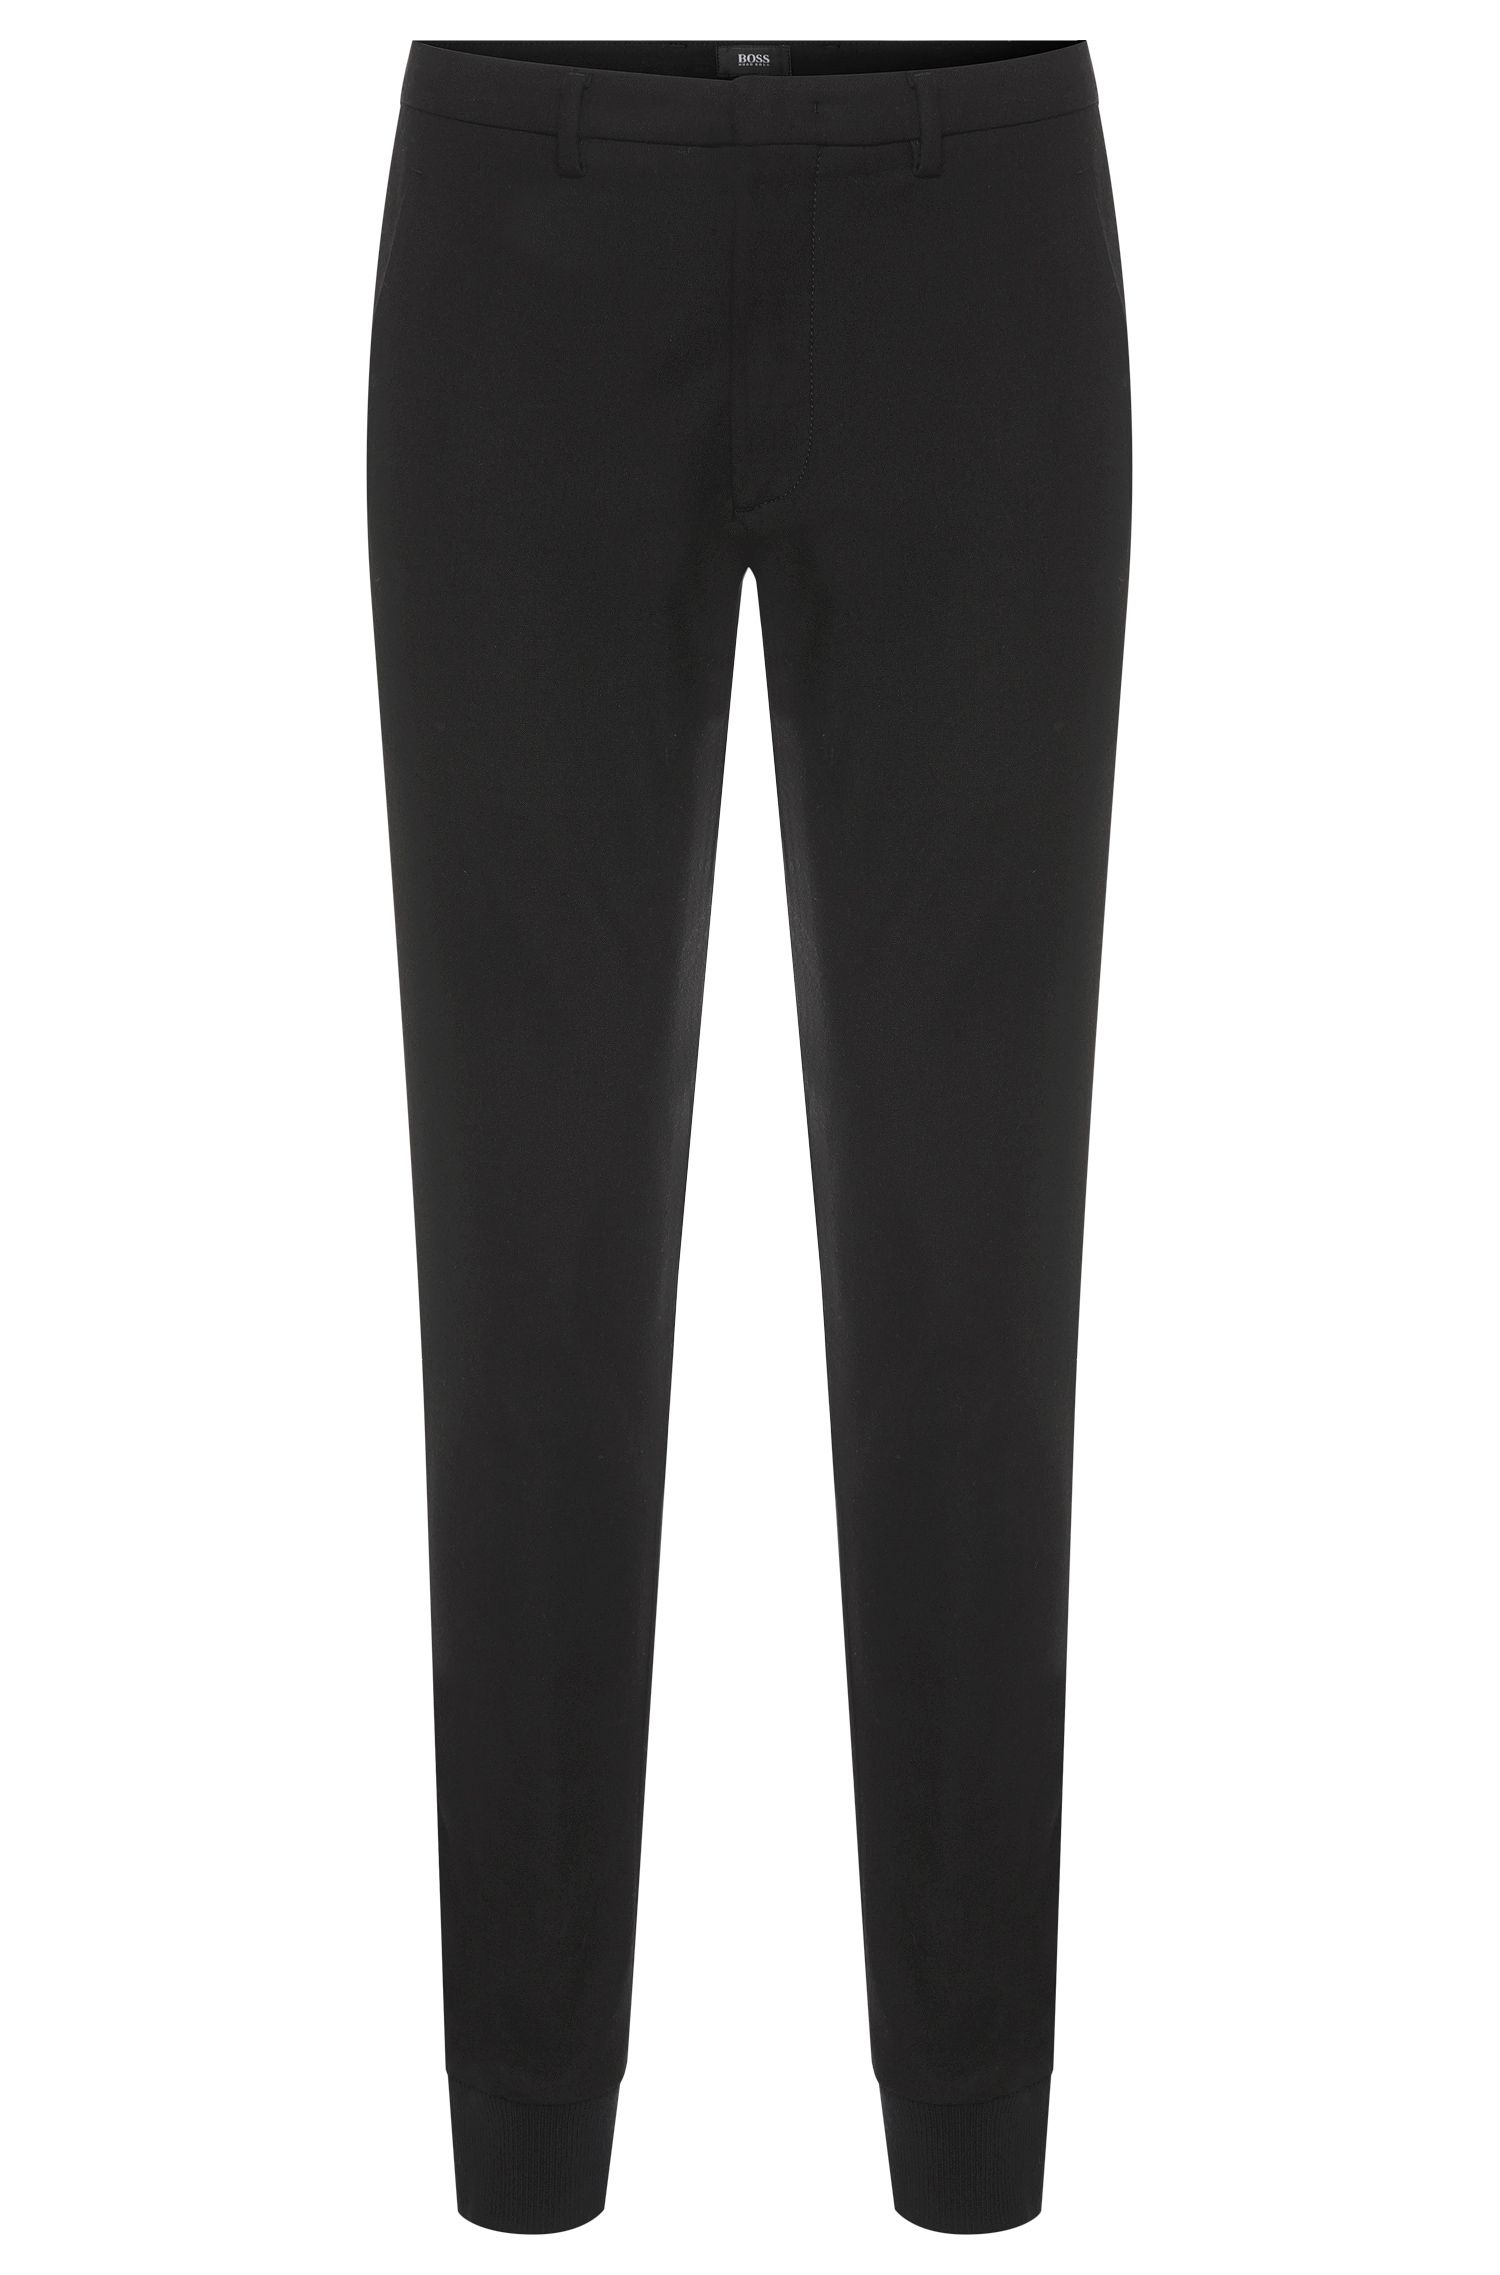 'Kito Jogg W' | Extra Slim Fit, Stretch Cotton Virgin Wool Blend Trousers